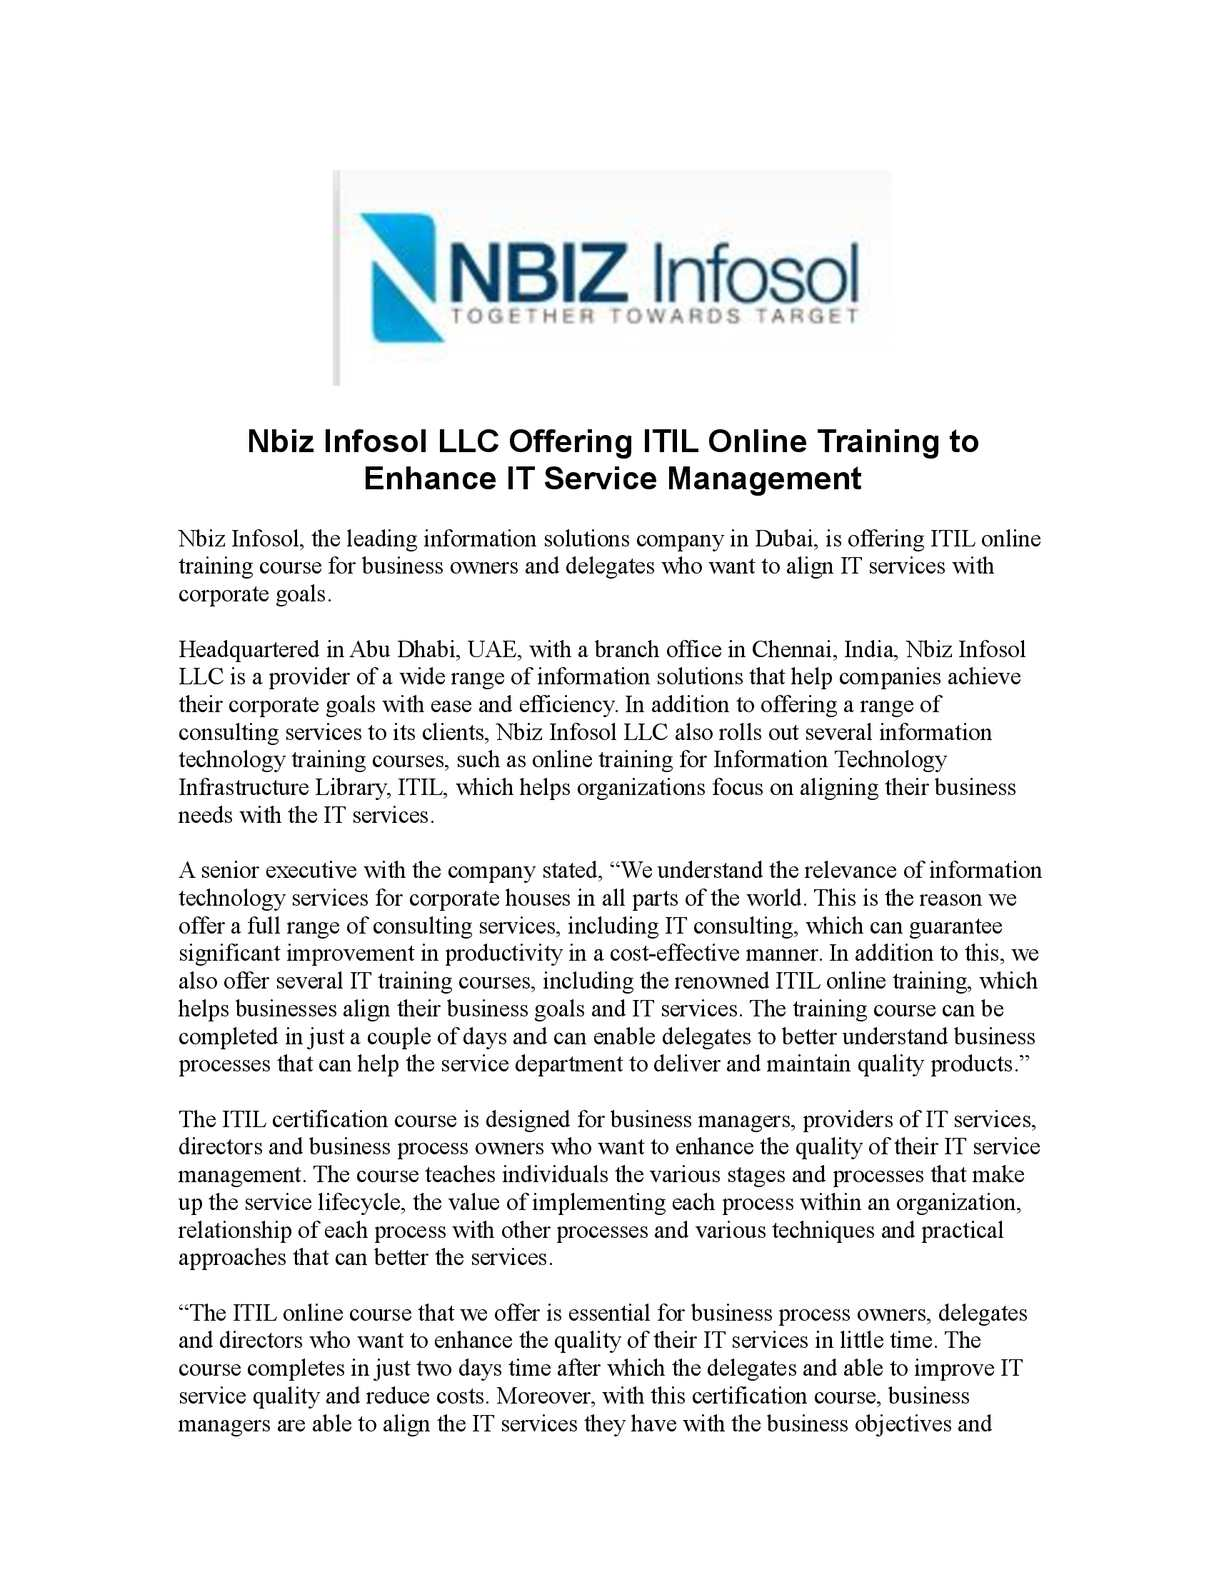 Calamo Nbiz Infosol Llc Offering Itil Online Training To Enhance